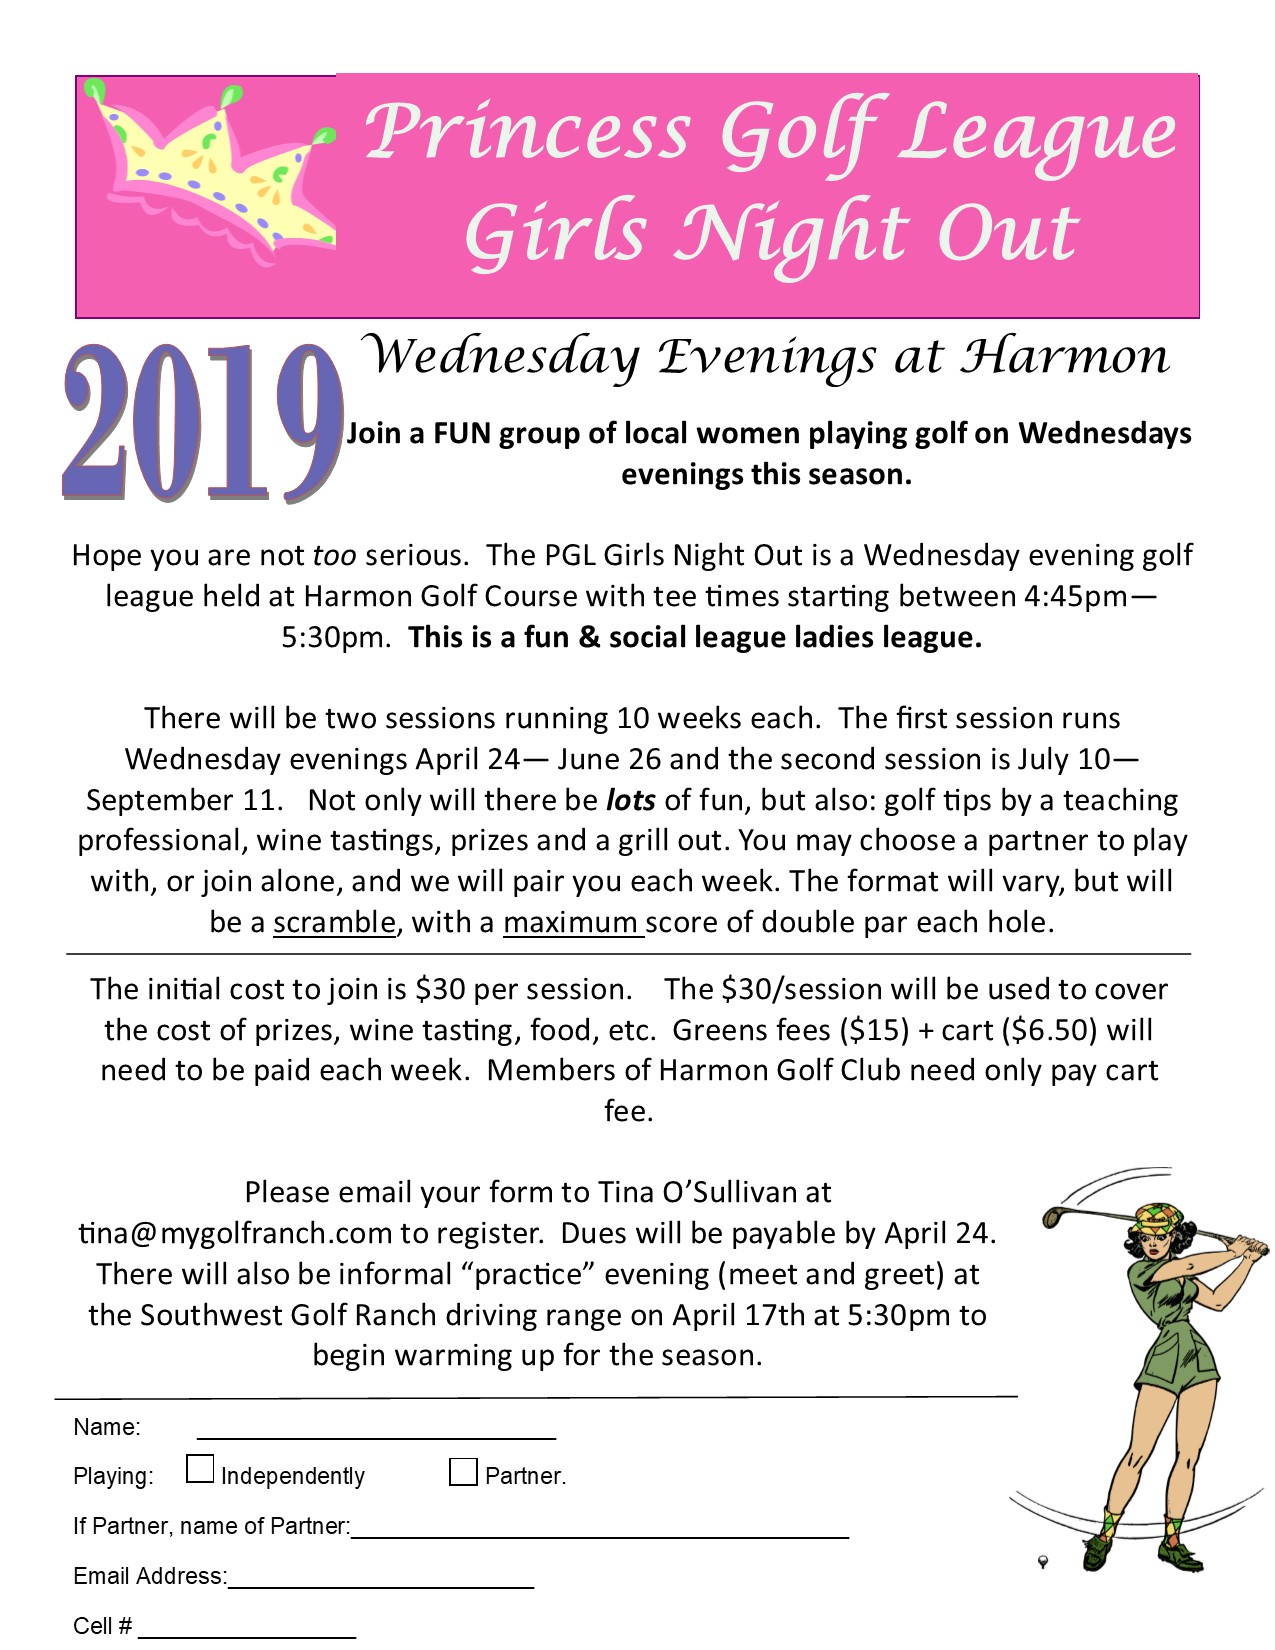 Princess Golf League 2019